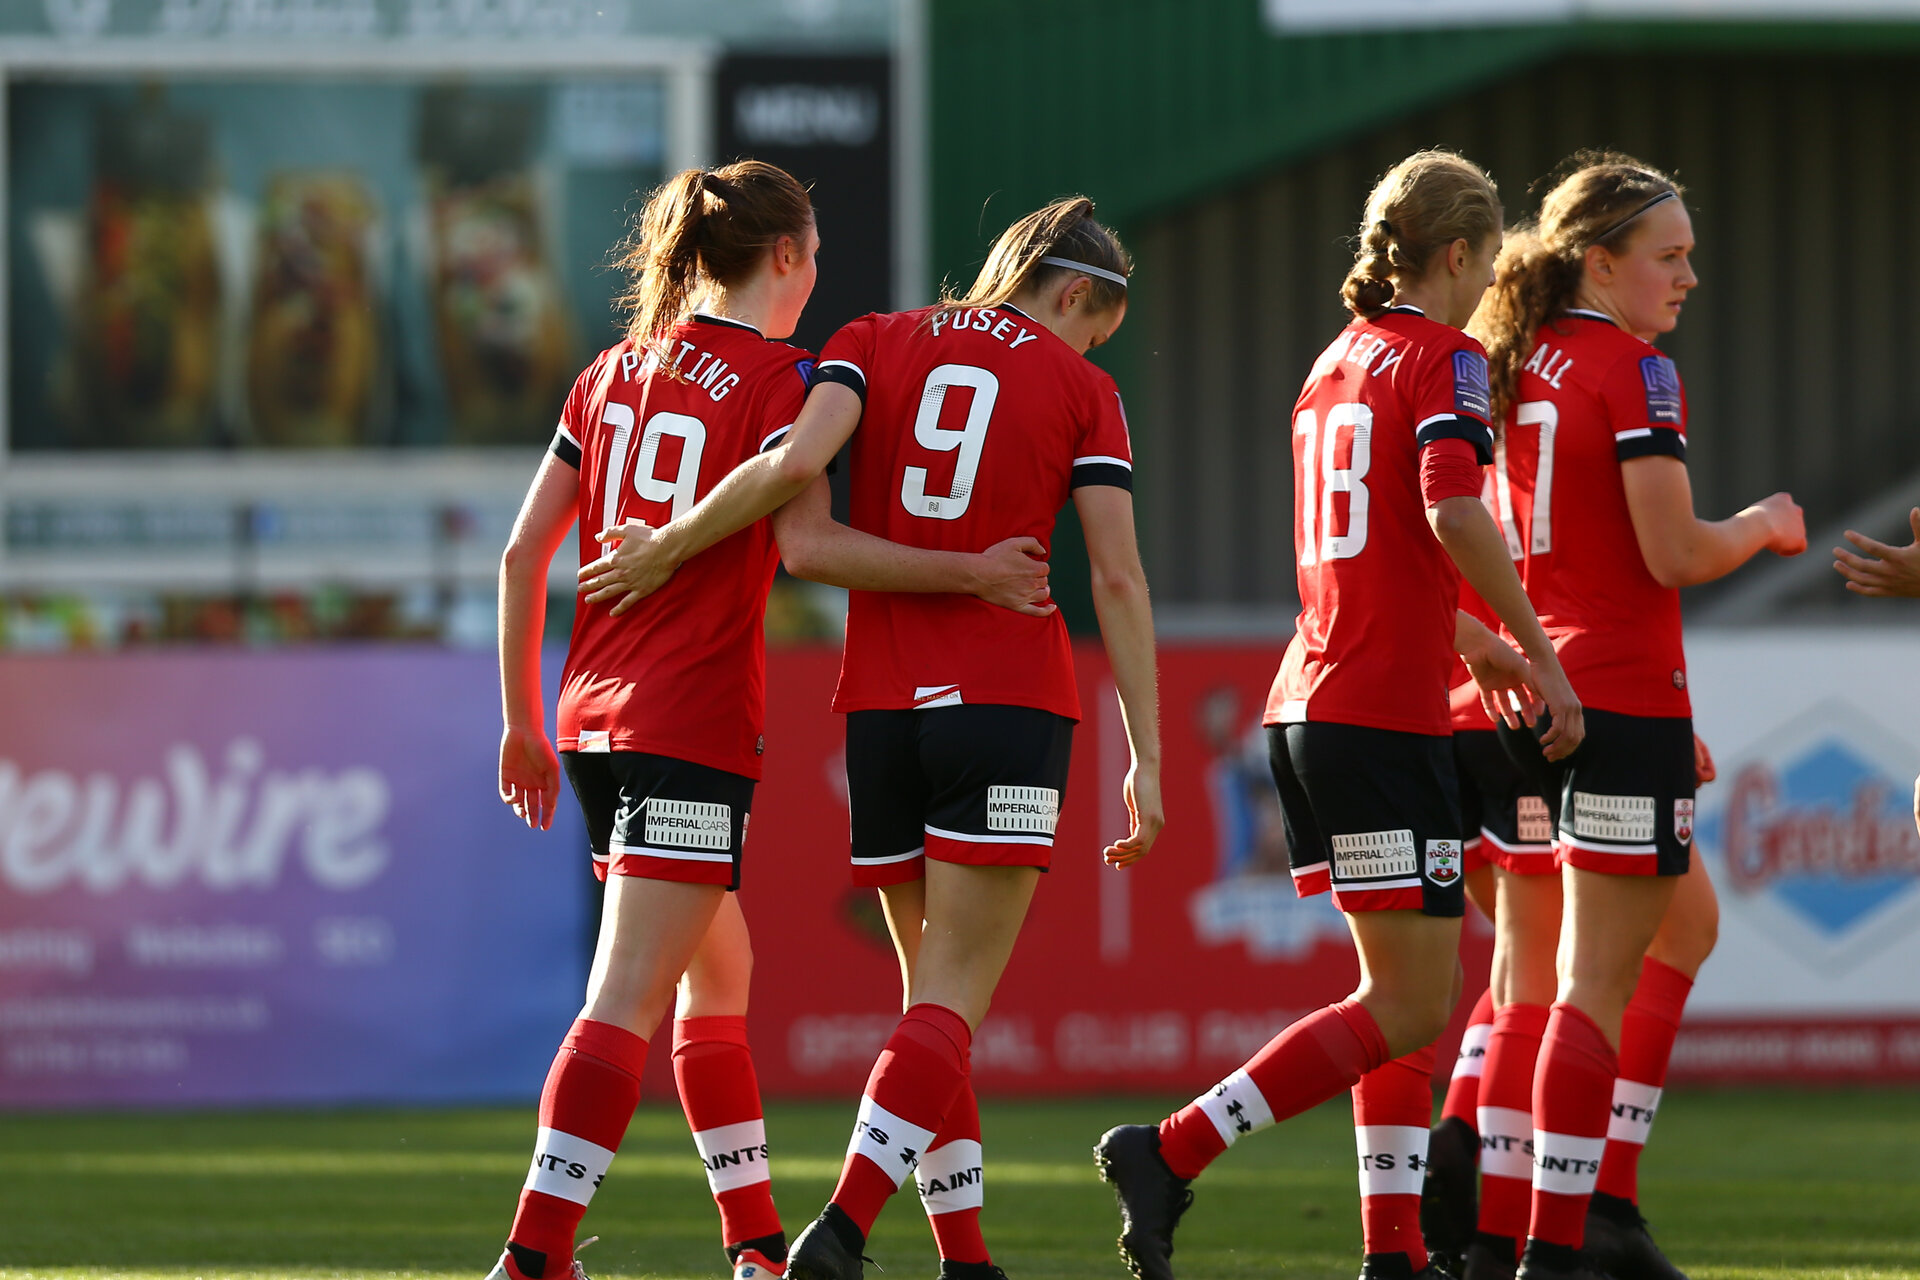 SOUTHAMPTON, ENGLAND - OCTOBER 11: Ella Pusey (R) of Southampton congratulating Rachel Panting (L) on her goal during FAWNL match between Southampton Women and Exeter City at Snows Stadium on October 11, 2020 in Southampton, England. (Photo by Isabelle Field/Southampton FC via Getty Images)